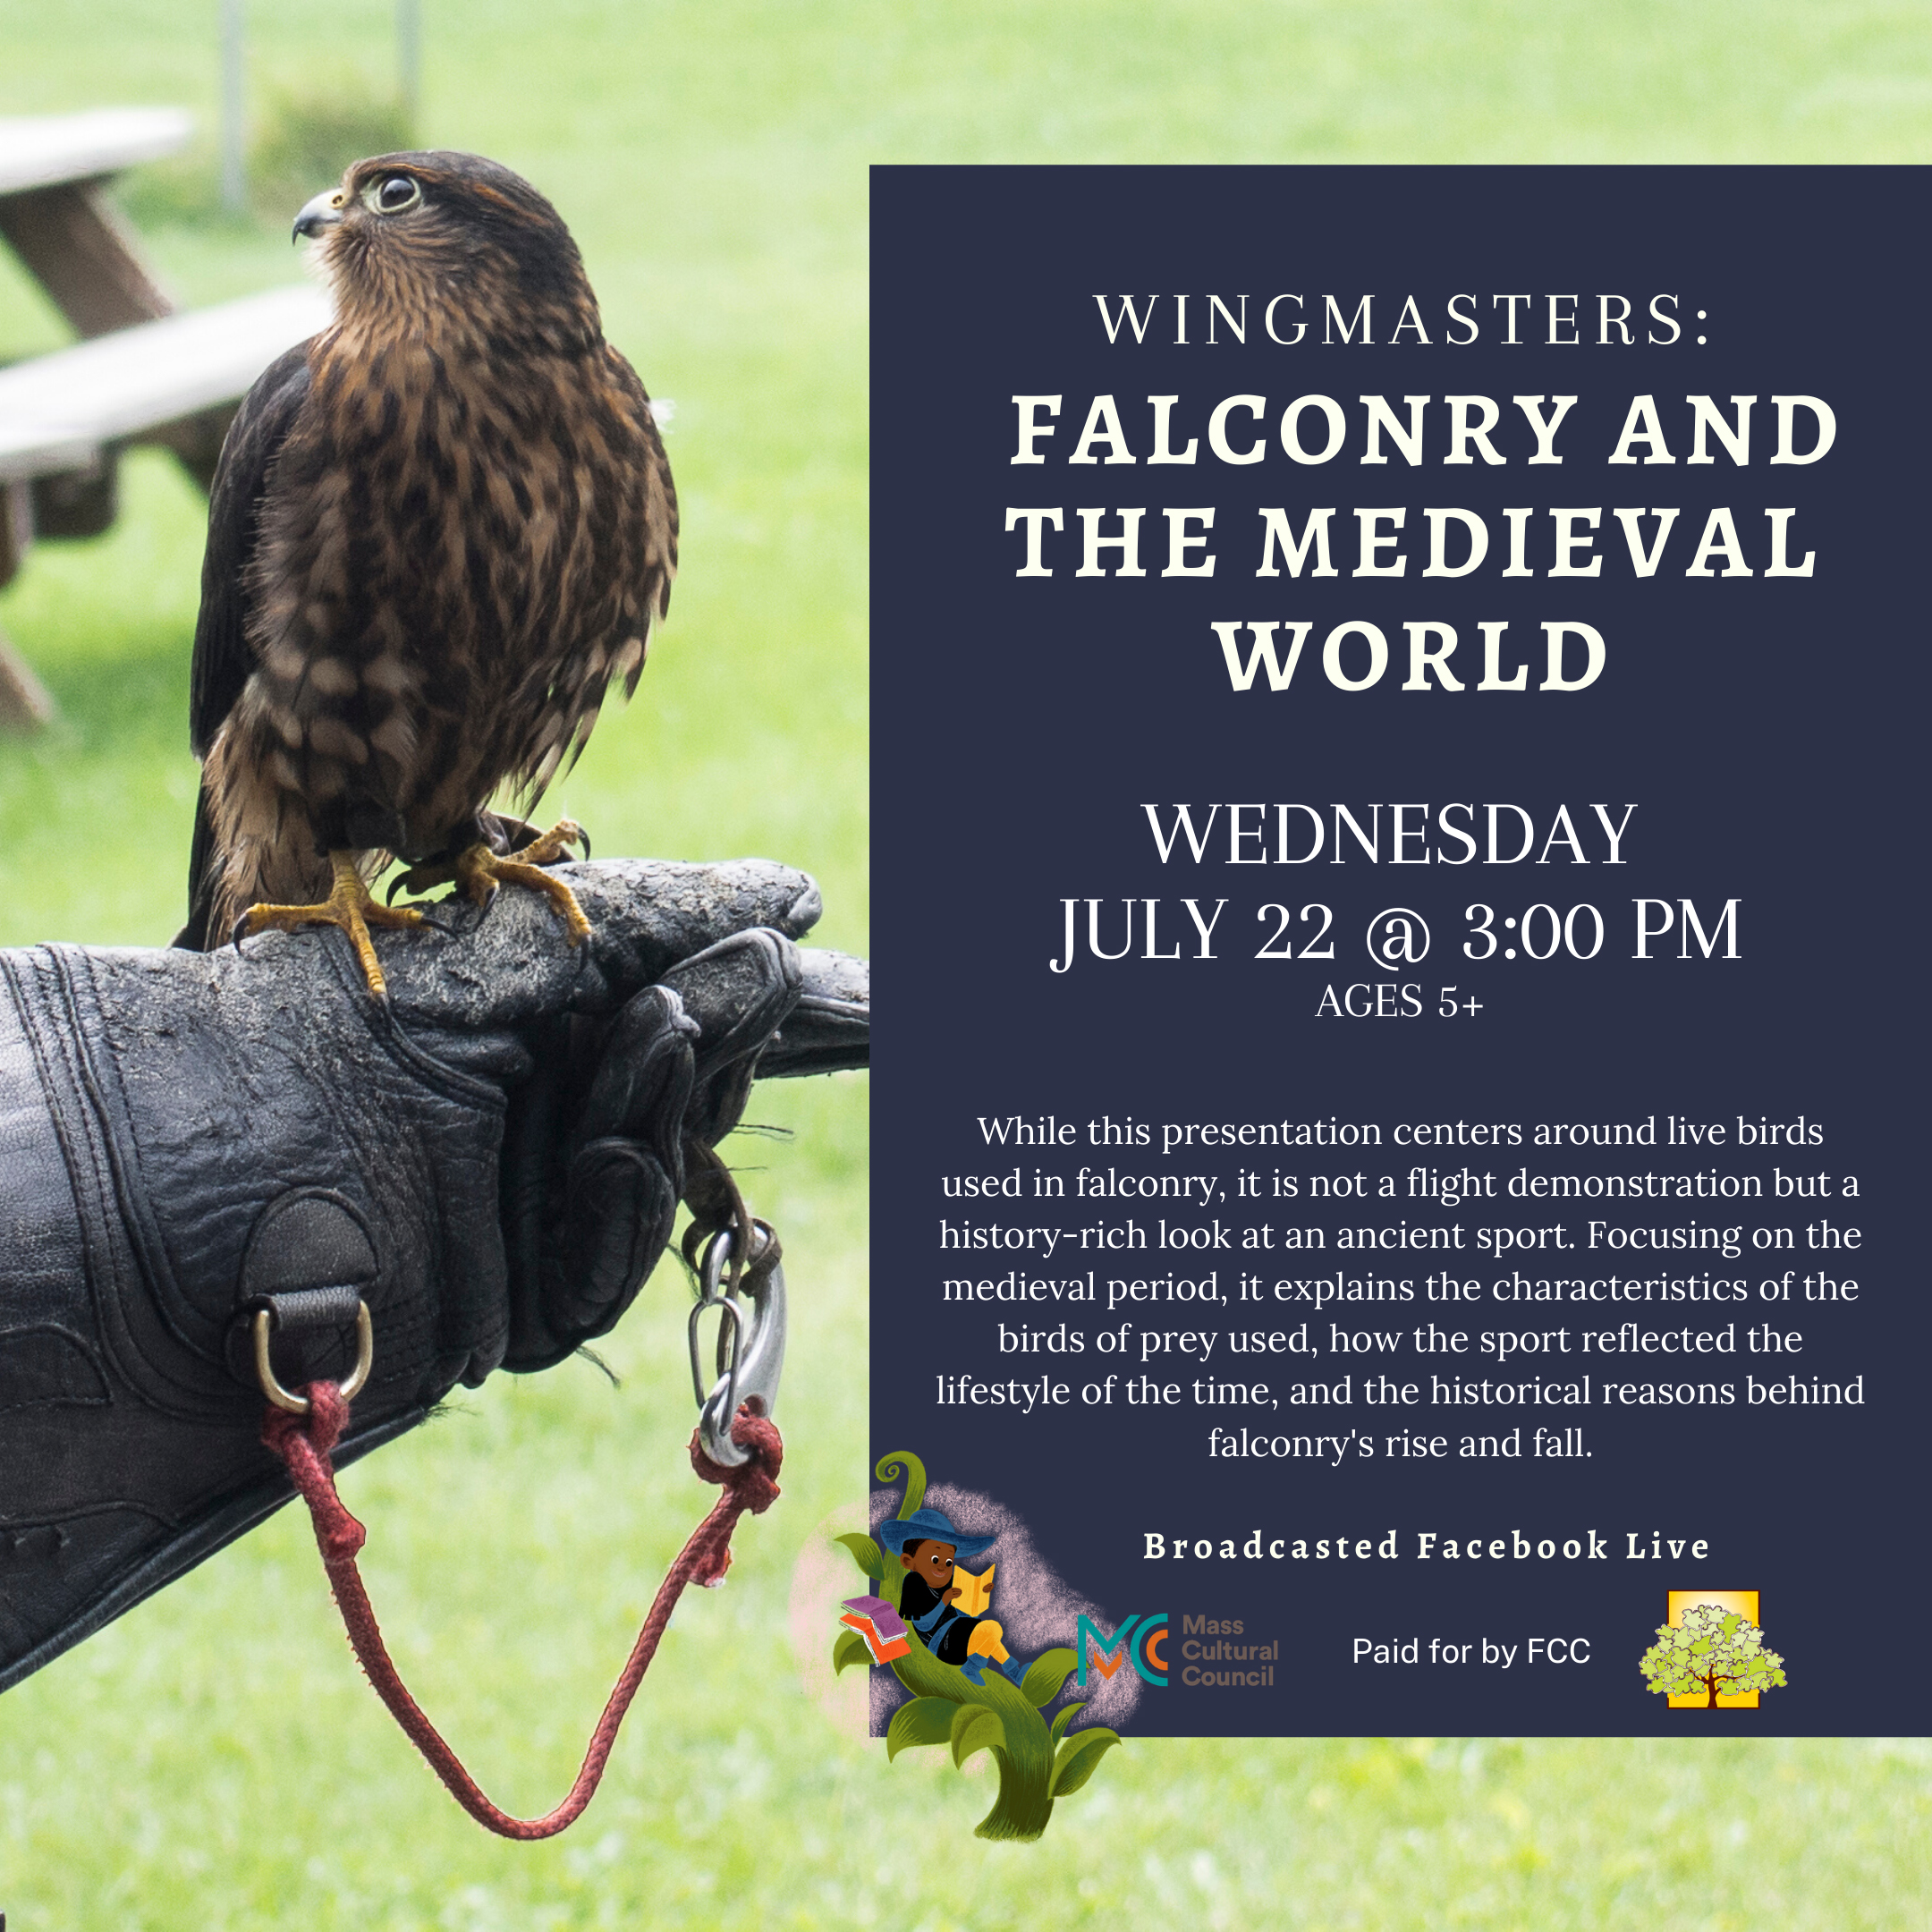 Wingmasters: Falconry and the Medieval World thumbnail Photo